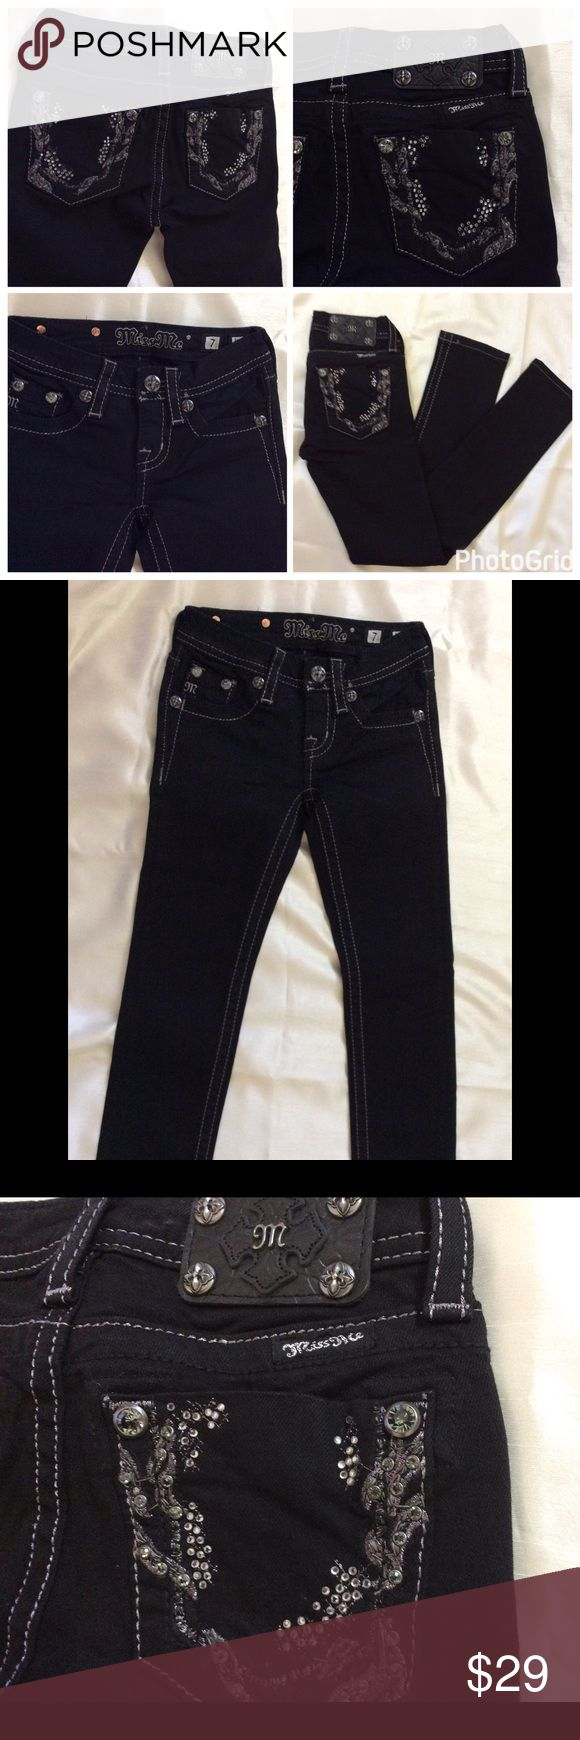 Girls Miss Me Jeans NWOT girls Miss Me Jeans, black color , Skinny jeans ,inseam is 24 inches, size 7, brand new Miss Me Bottoms Jeans